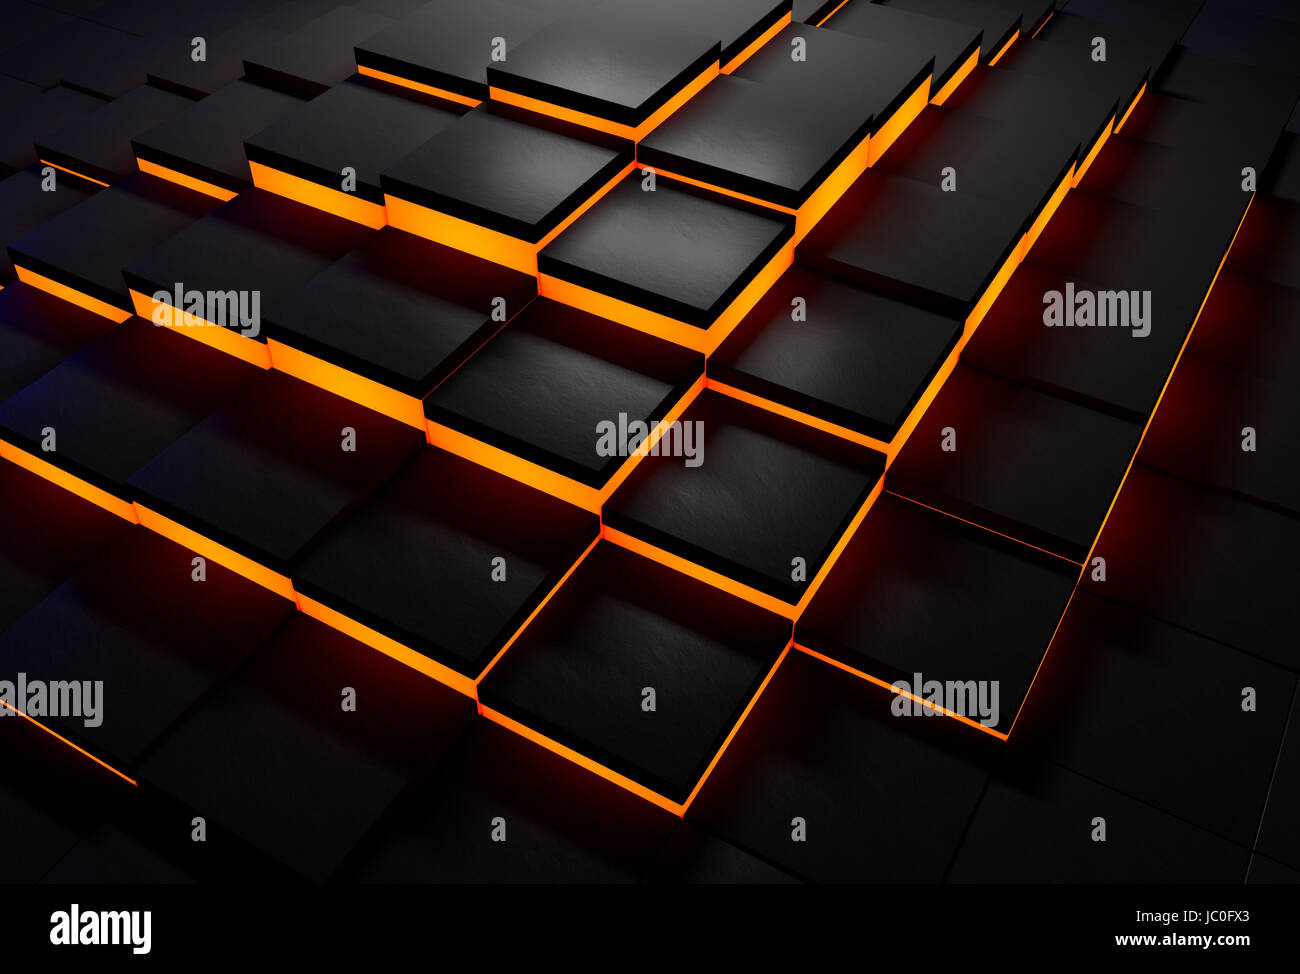 Abstract Background Of Black Tiles With Glowing Orange Edges